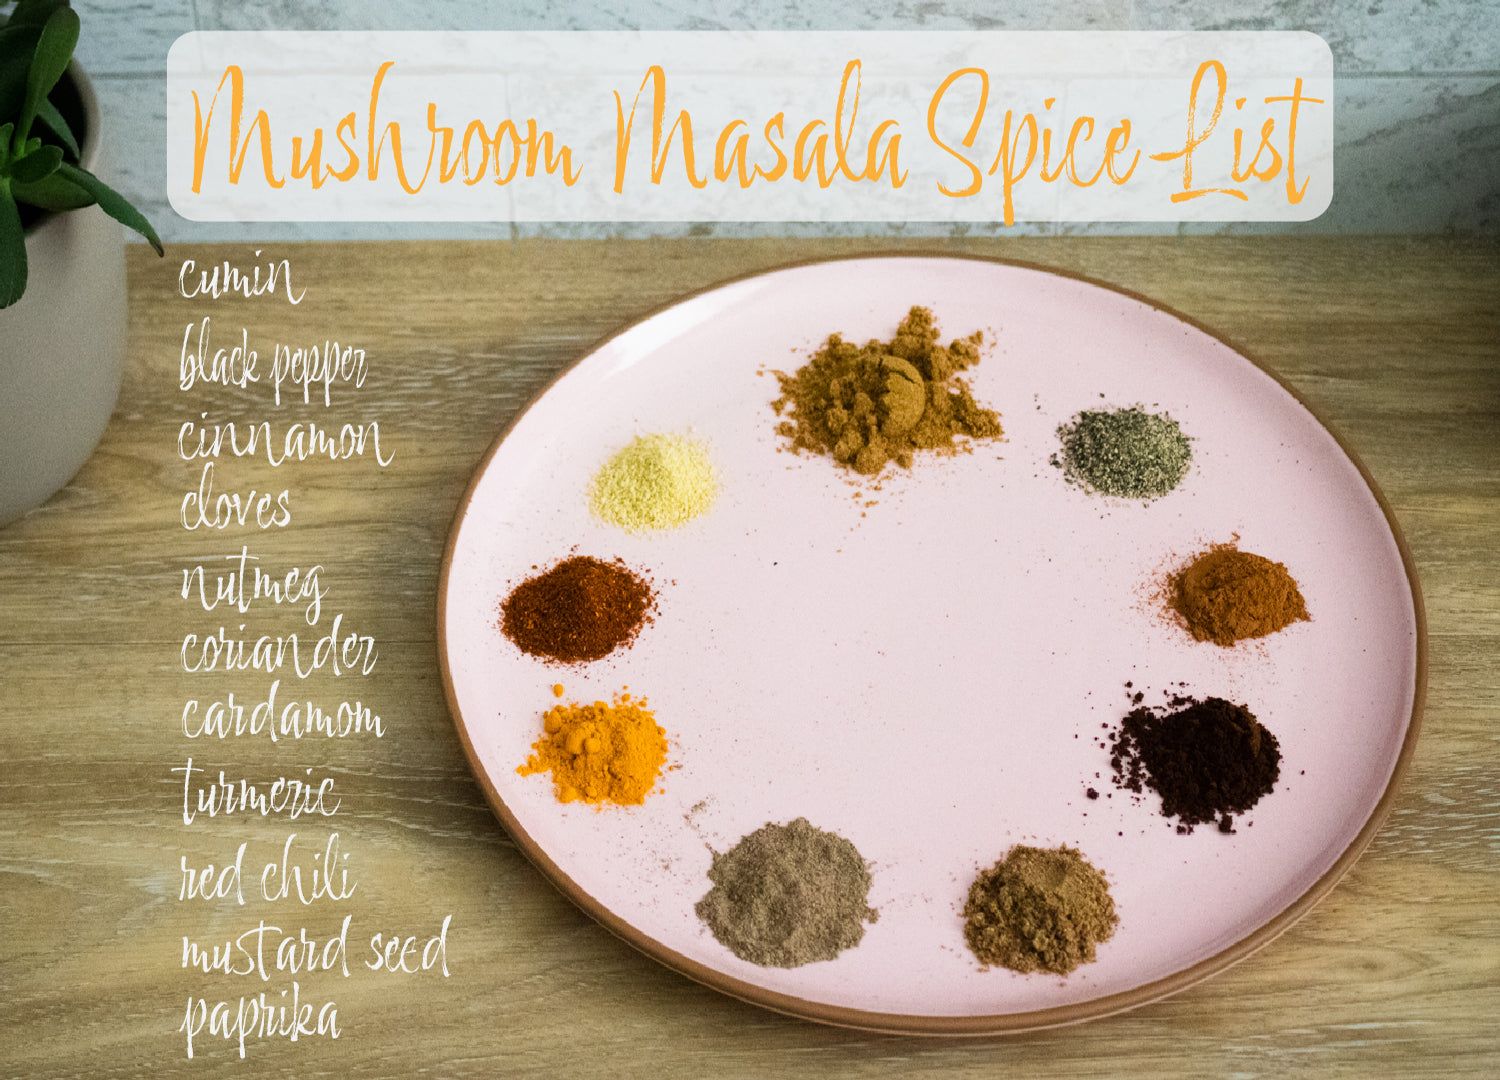 Some of the essential spices you will need to make your own masala spice blend  listed and plated on a Rose Mora Ceramics dinner plate. Cumin, coriander, cardamom, cinnamon, black pepper, cloves, nutmeg, turmeric, red chili, paprika, and ground mustard seed.